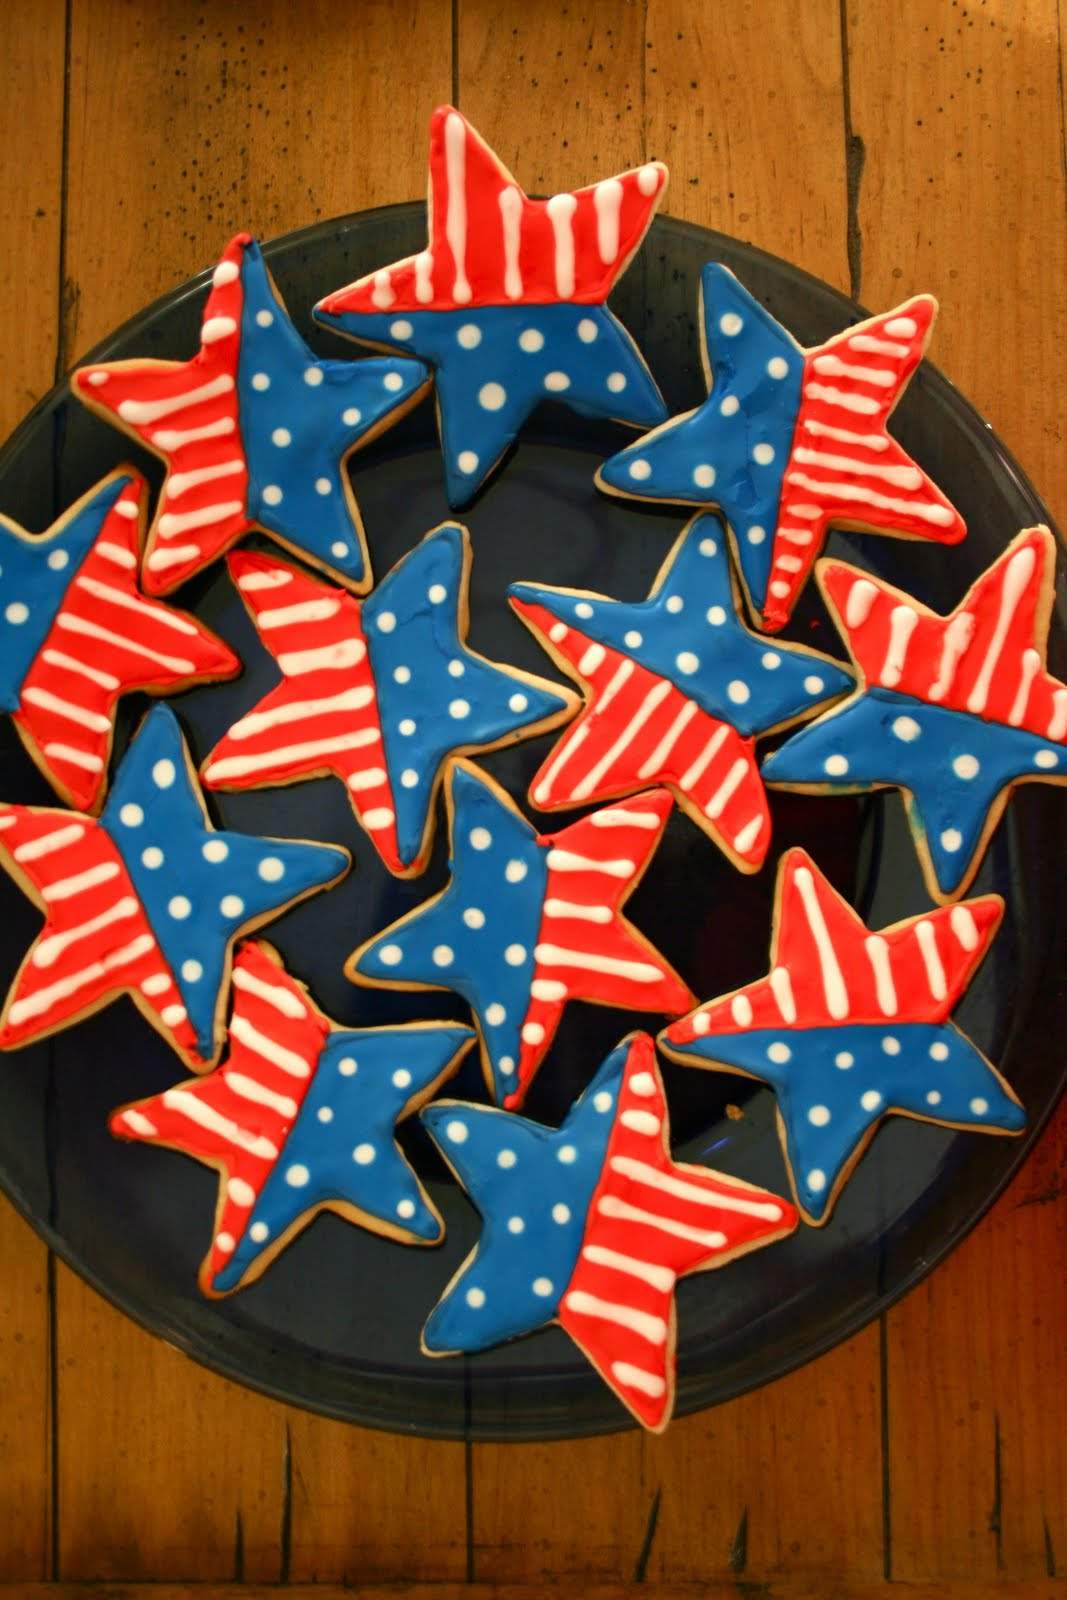 4th Of July Sugar Cookies